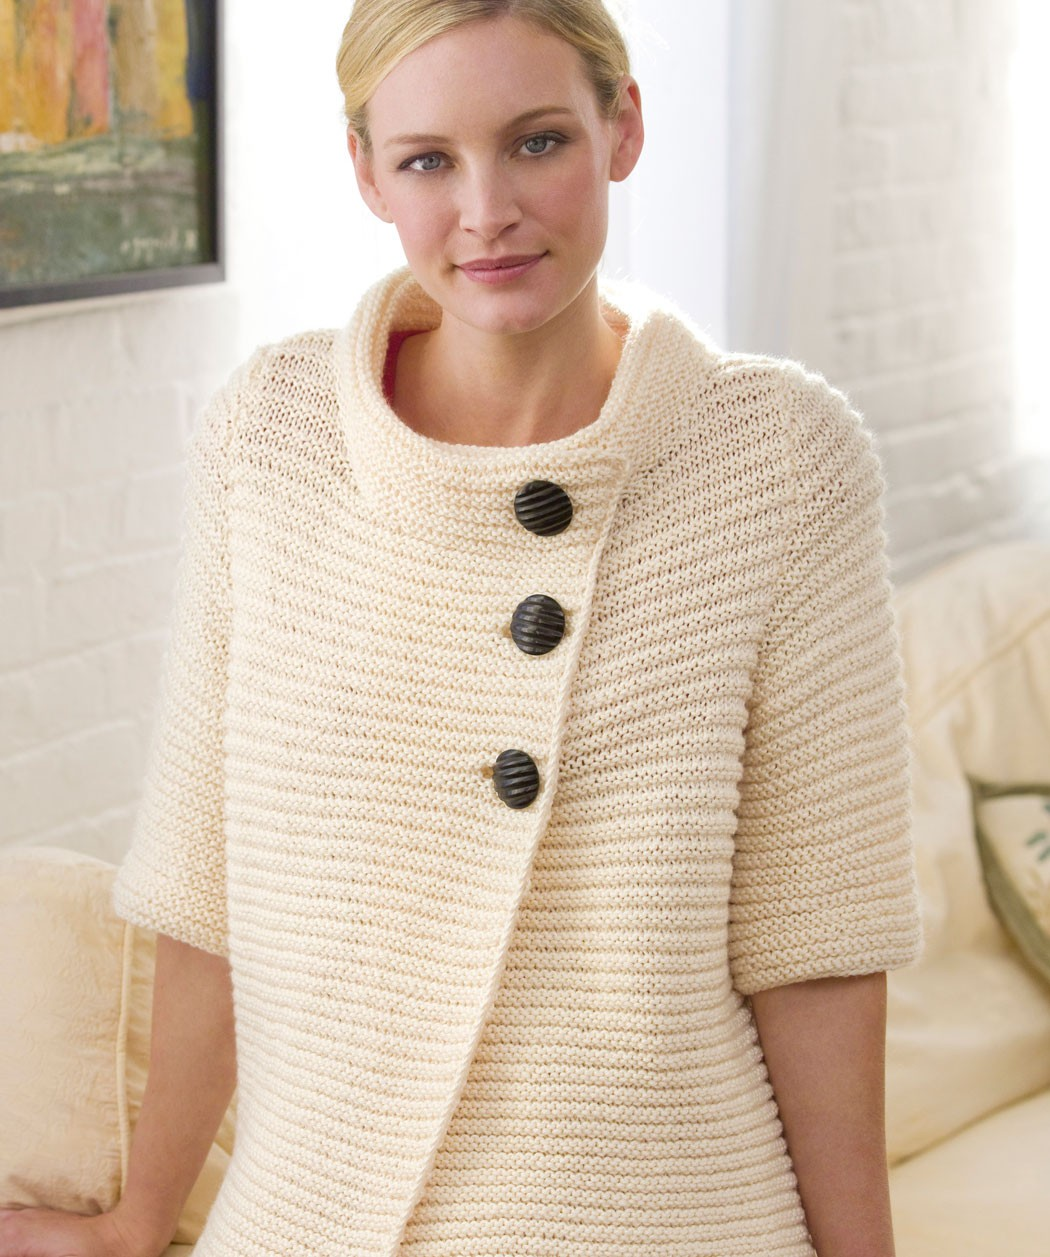 Knitting Patterns Sweater : Knitted sweater patterns for women a knitting